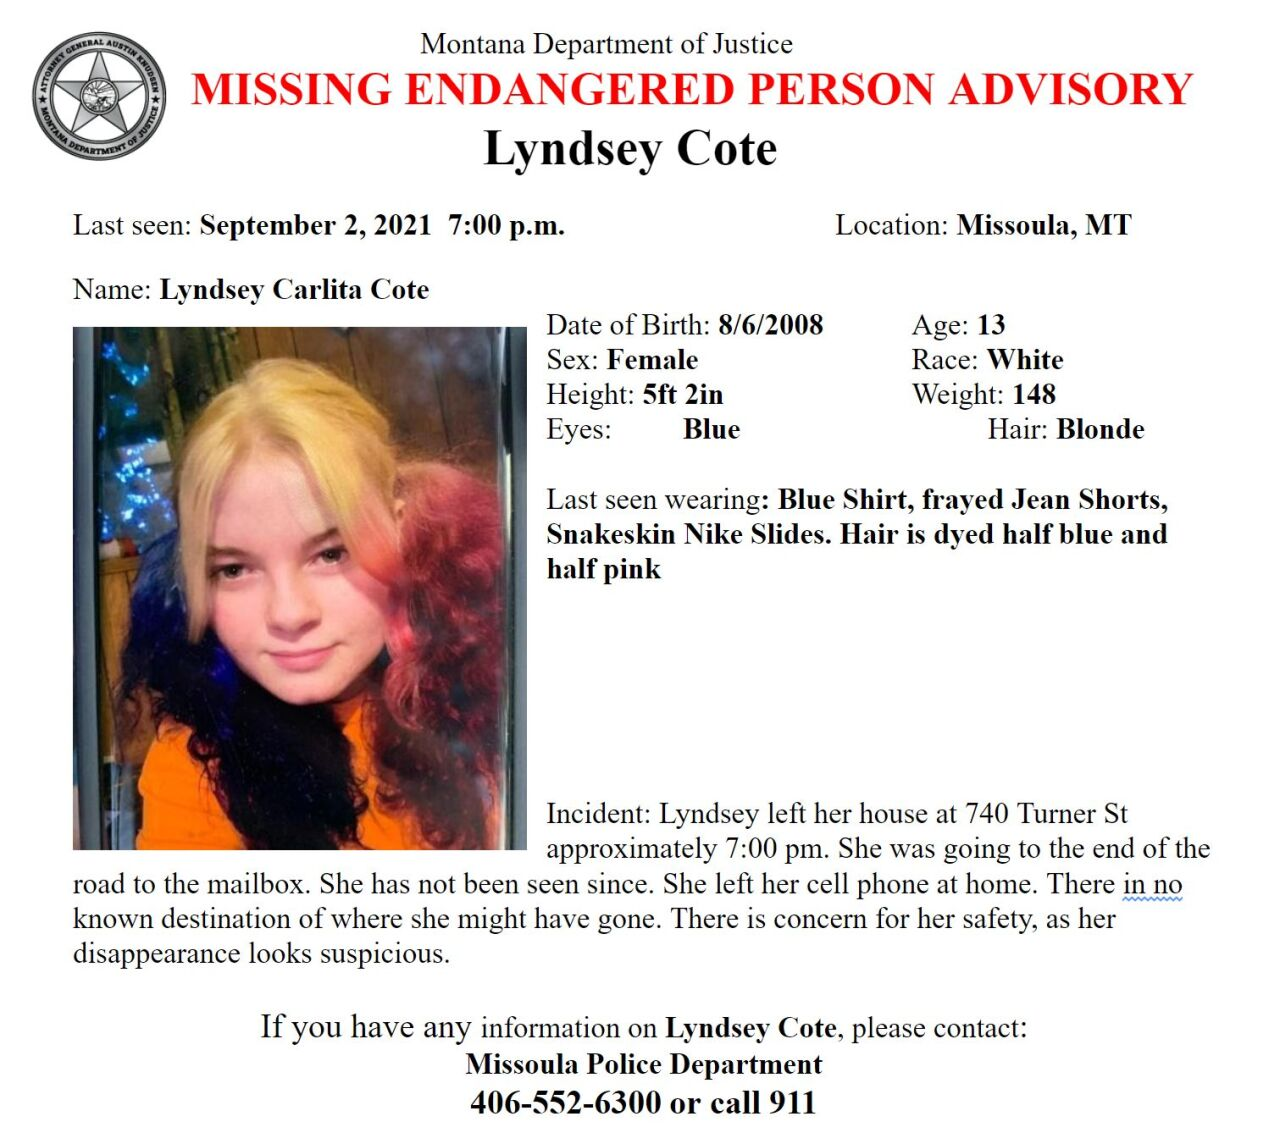 Missing/Endangered Person Advisory for 13-year old Lyndsey Cote of Missoula